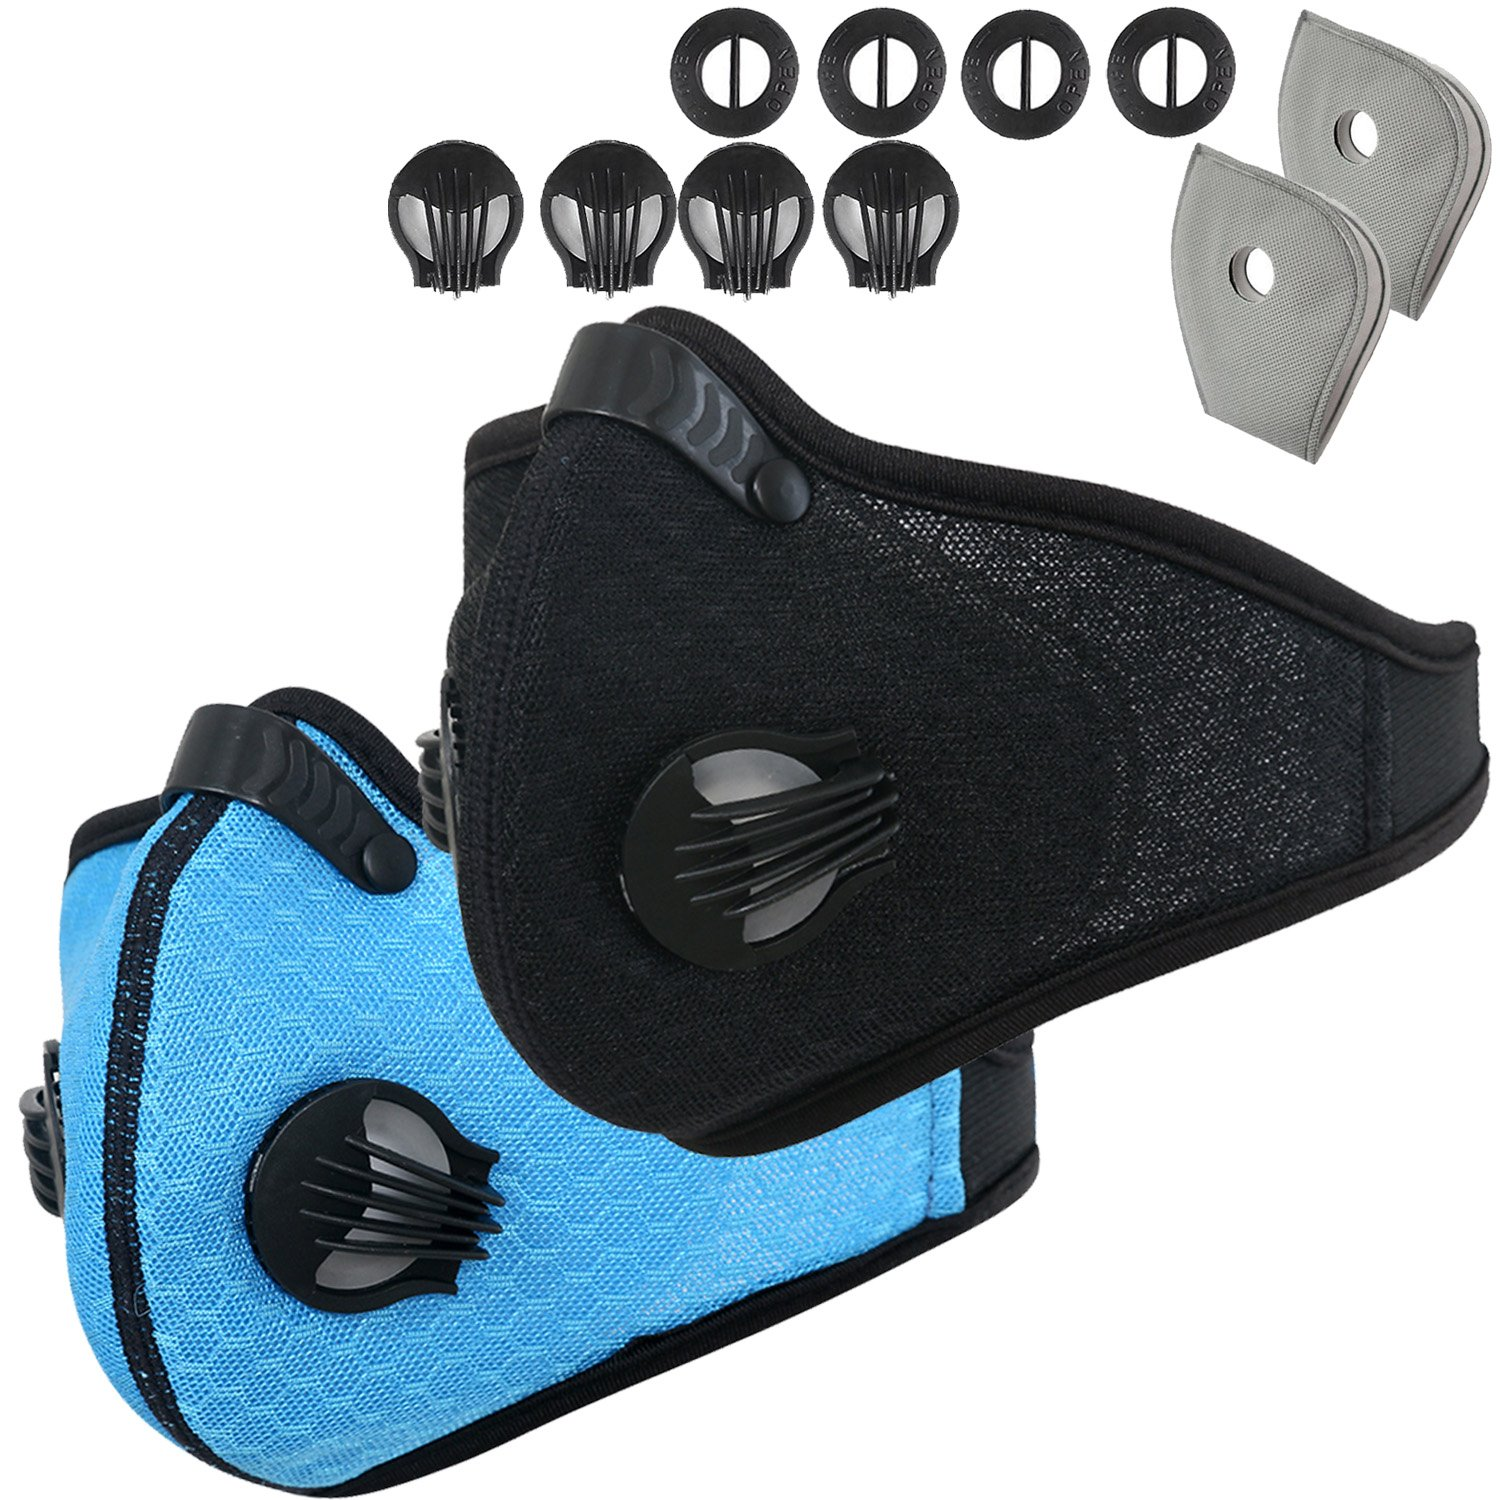 Dustproof Mask - Activated Carbon Dust Masks - with Extra Filter Cotton Sheet and Valves for Exhaust Gas, Anti Pollen Allergy, PM2.5, Running, Cycling, Outdoor Activities (2 Pack Black+Blue, Type 1)